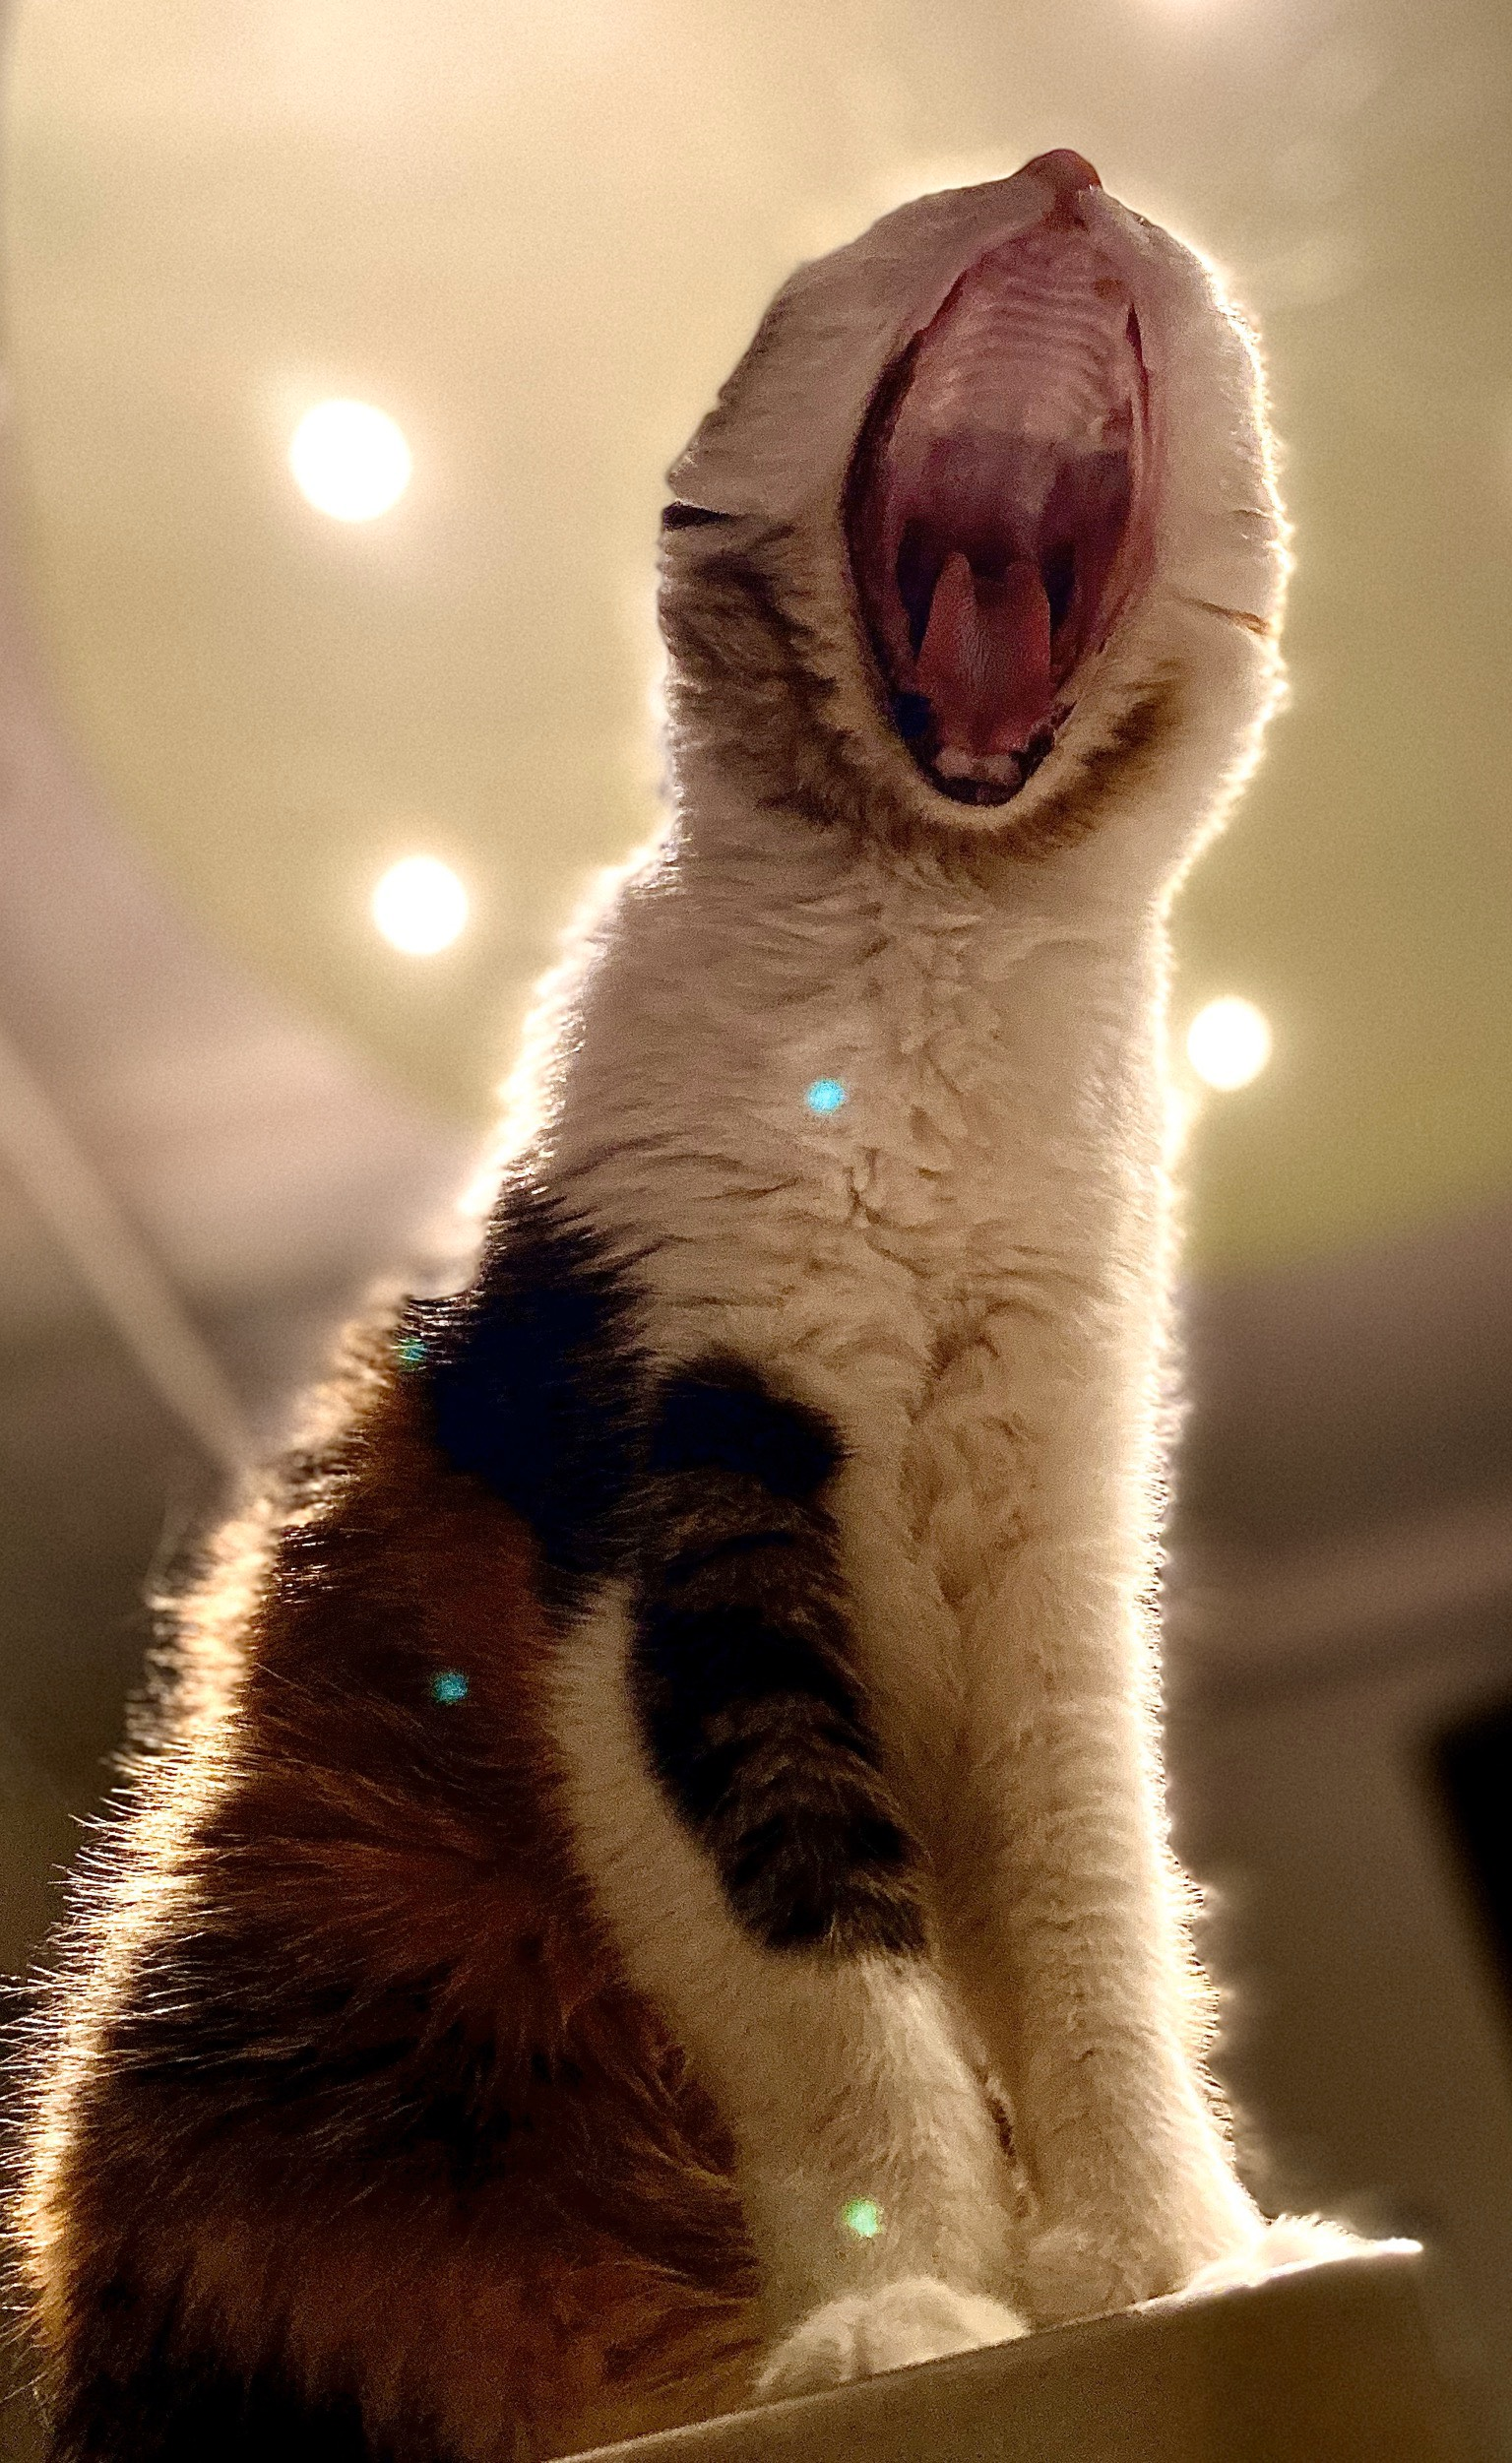 Mittens - Cat Mouth Wide Open